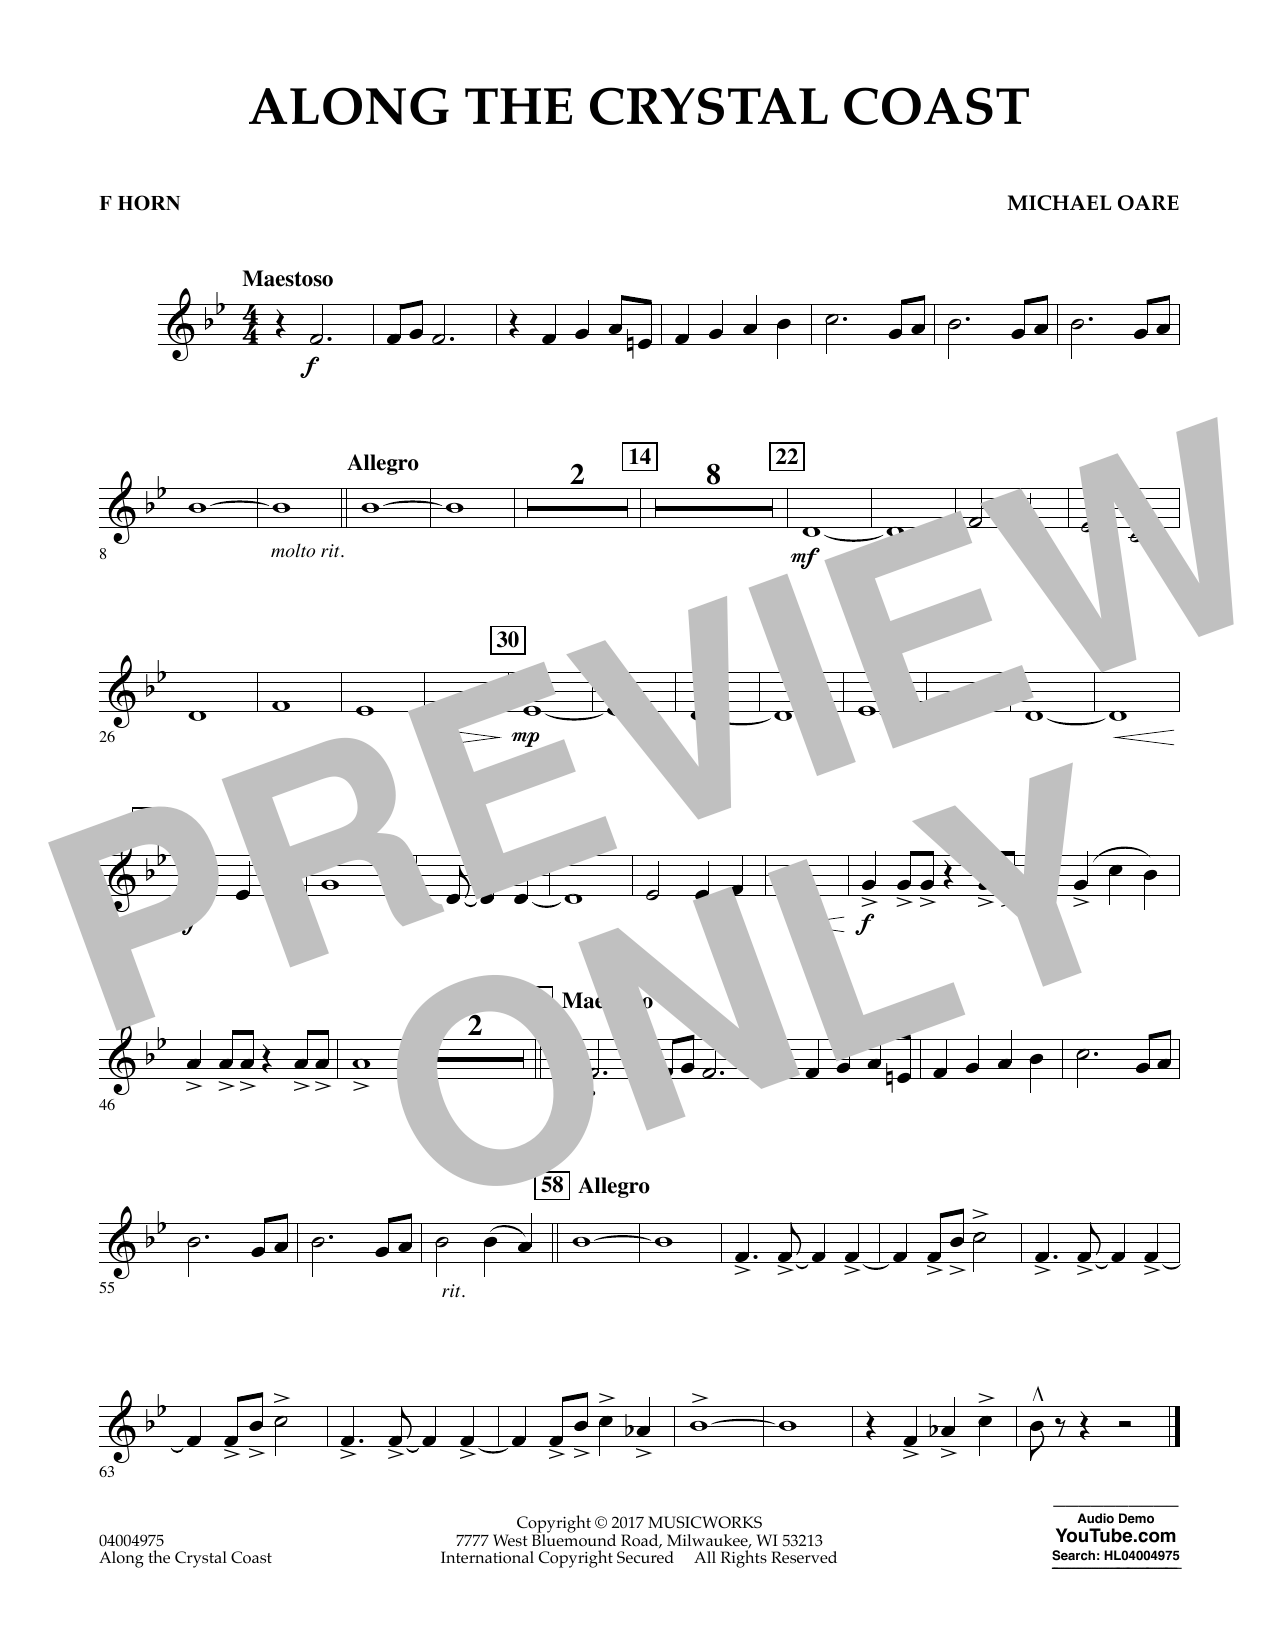 Michael Oare Along the Crystal Coast - F Horn sheet music notes and chords. Download Printable PDF.